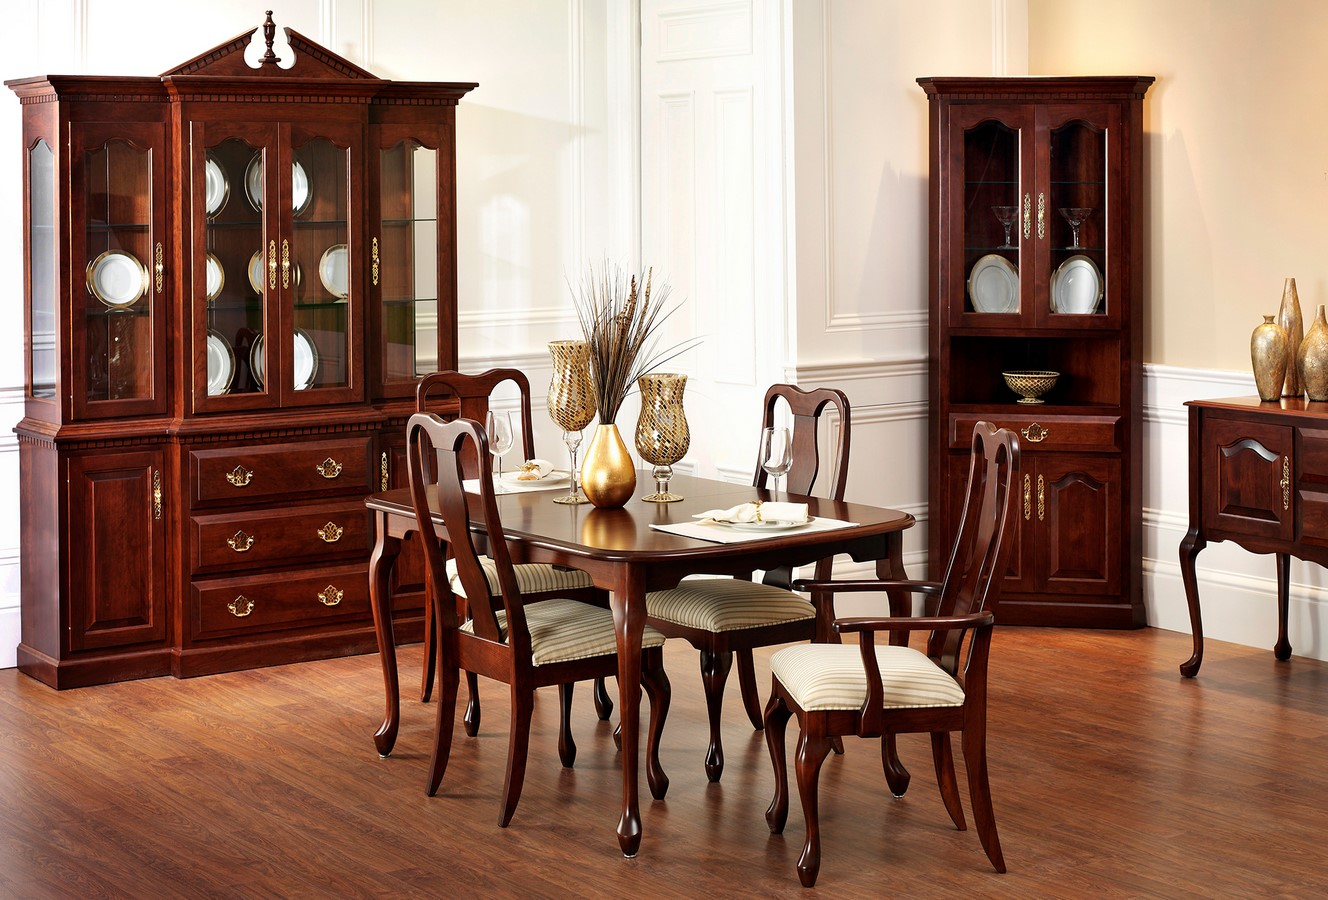 The psychology behind aesthetic value of antique furniture - Sheet7